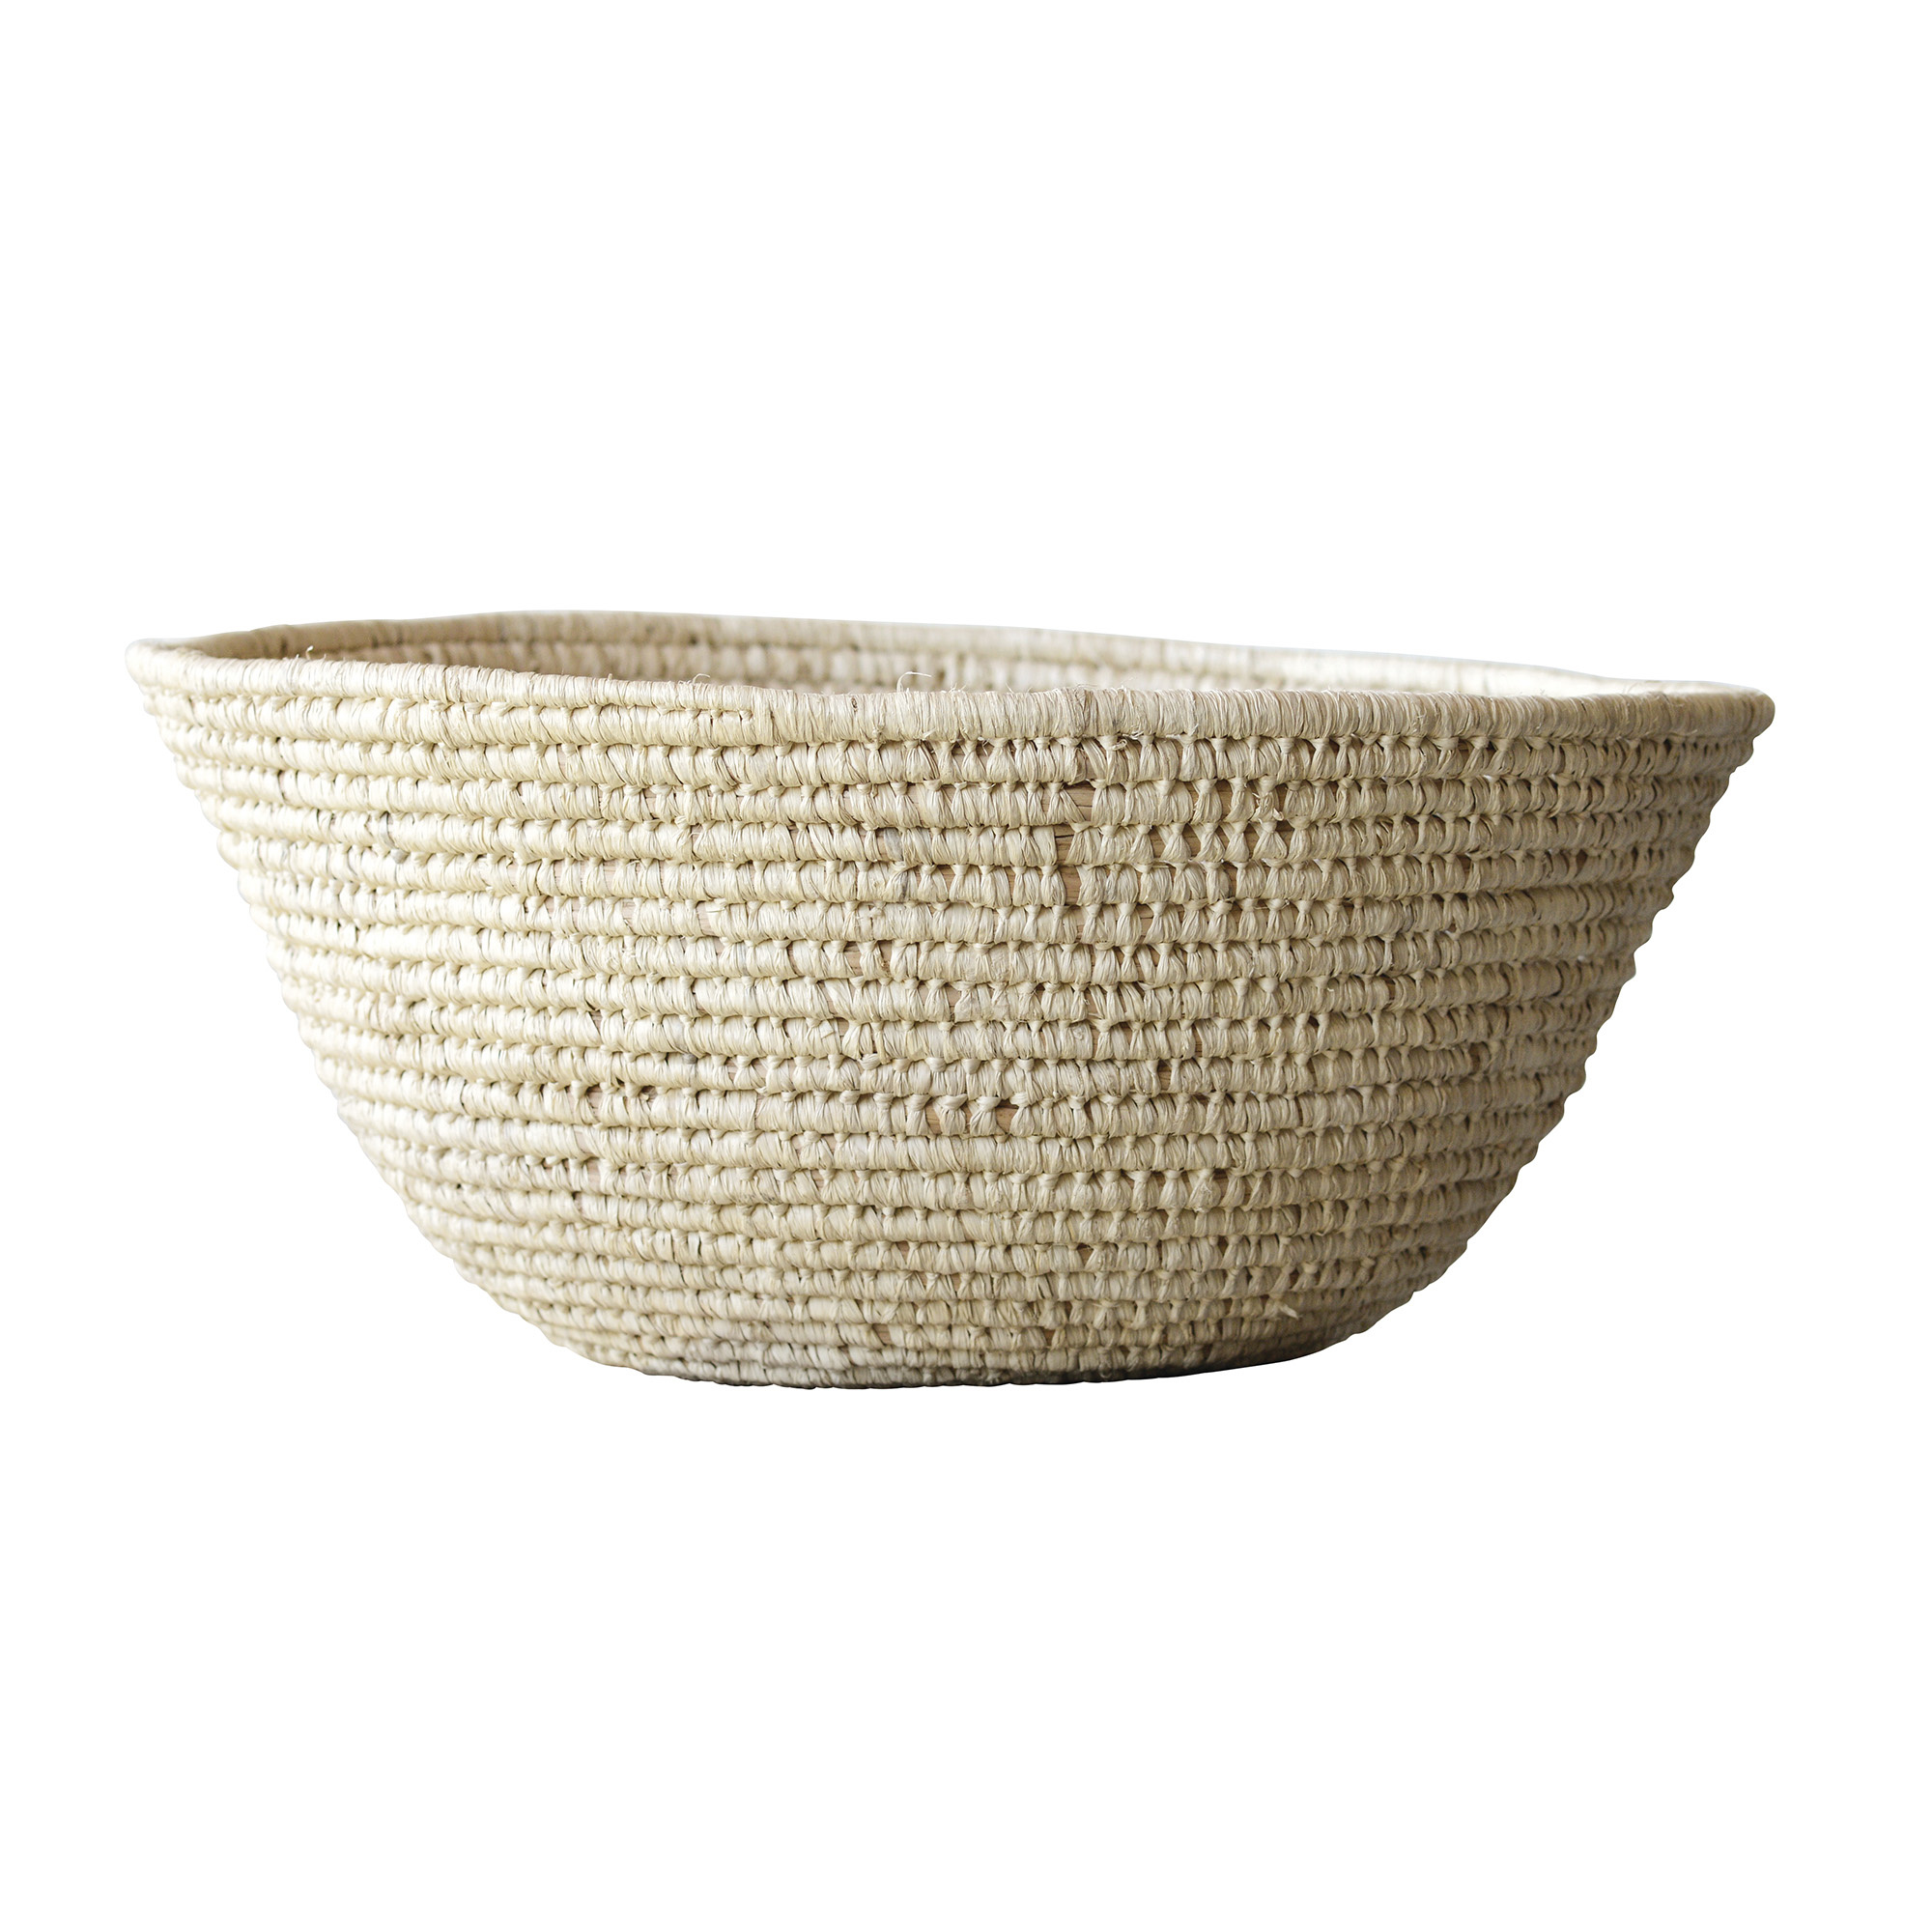 Bloomingville Raffia basket - natural - Ø66xh28cm - Bloomingville